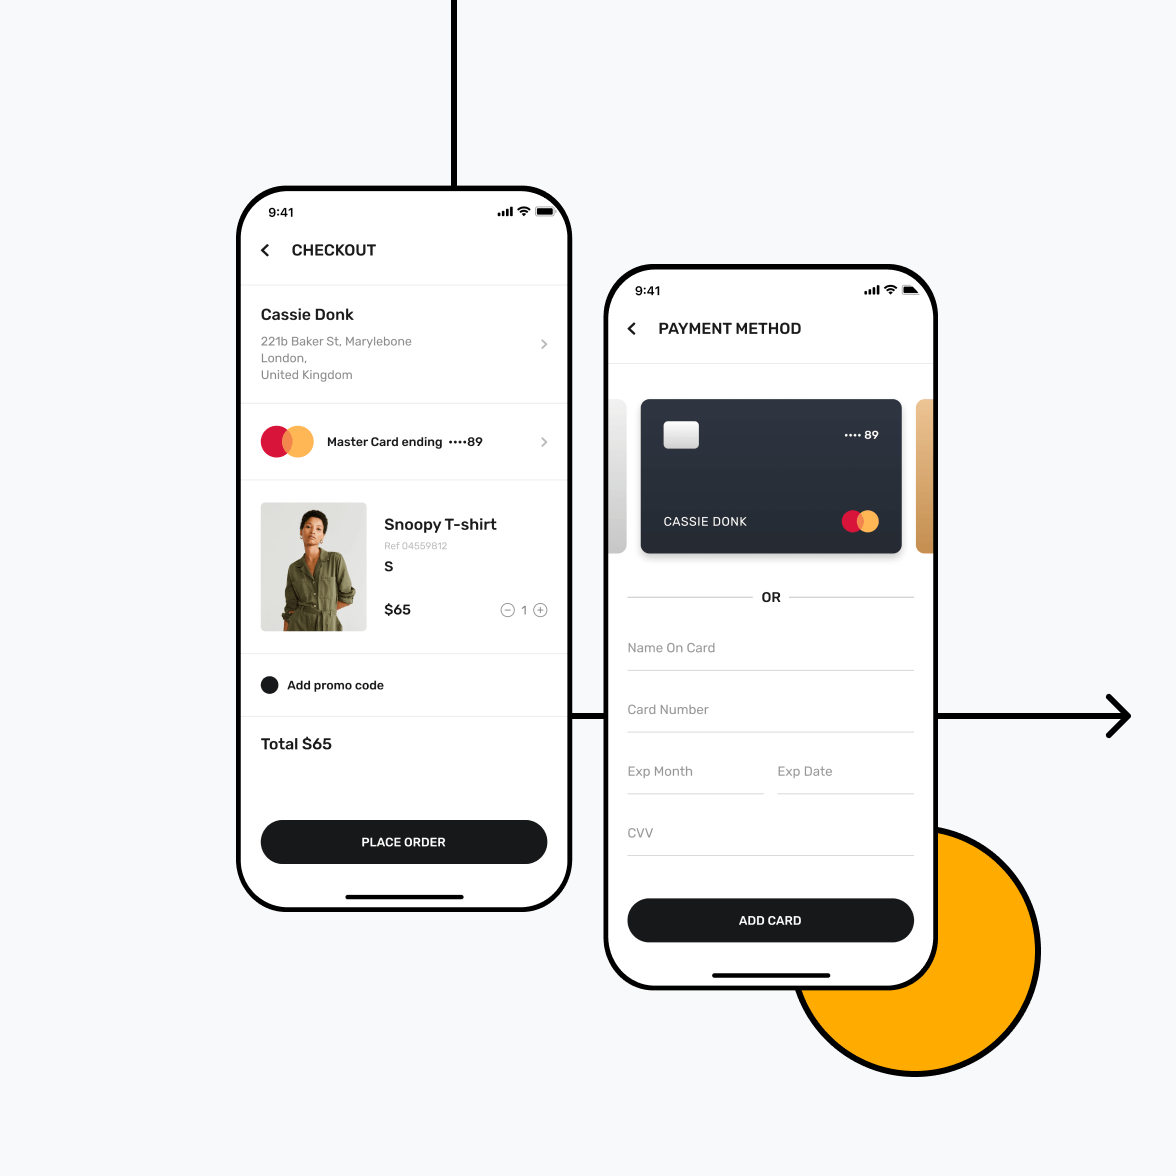 Retail app checkout screen with payment methods